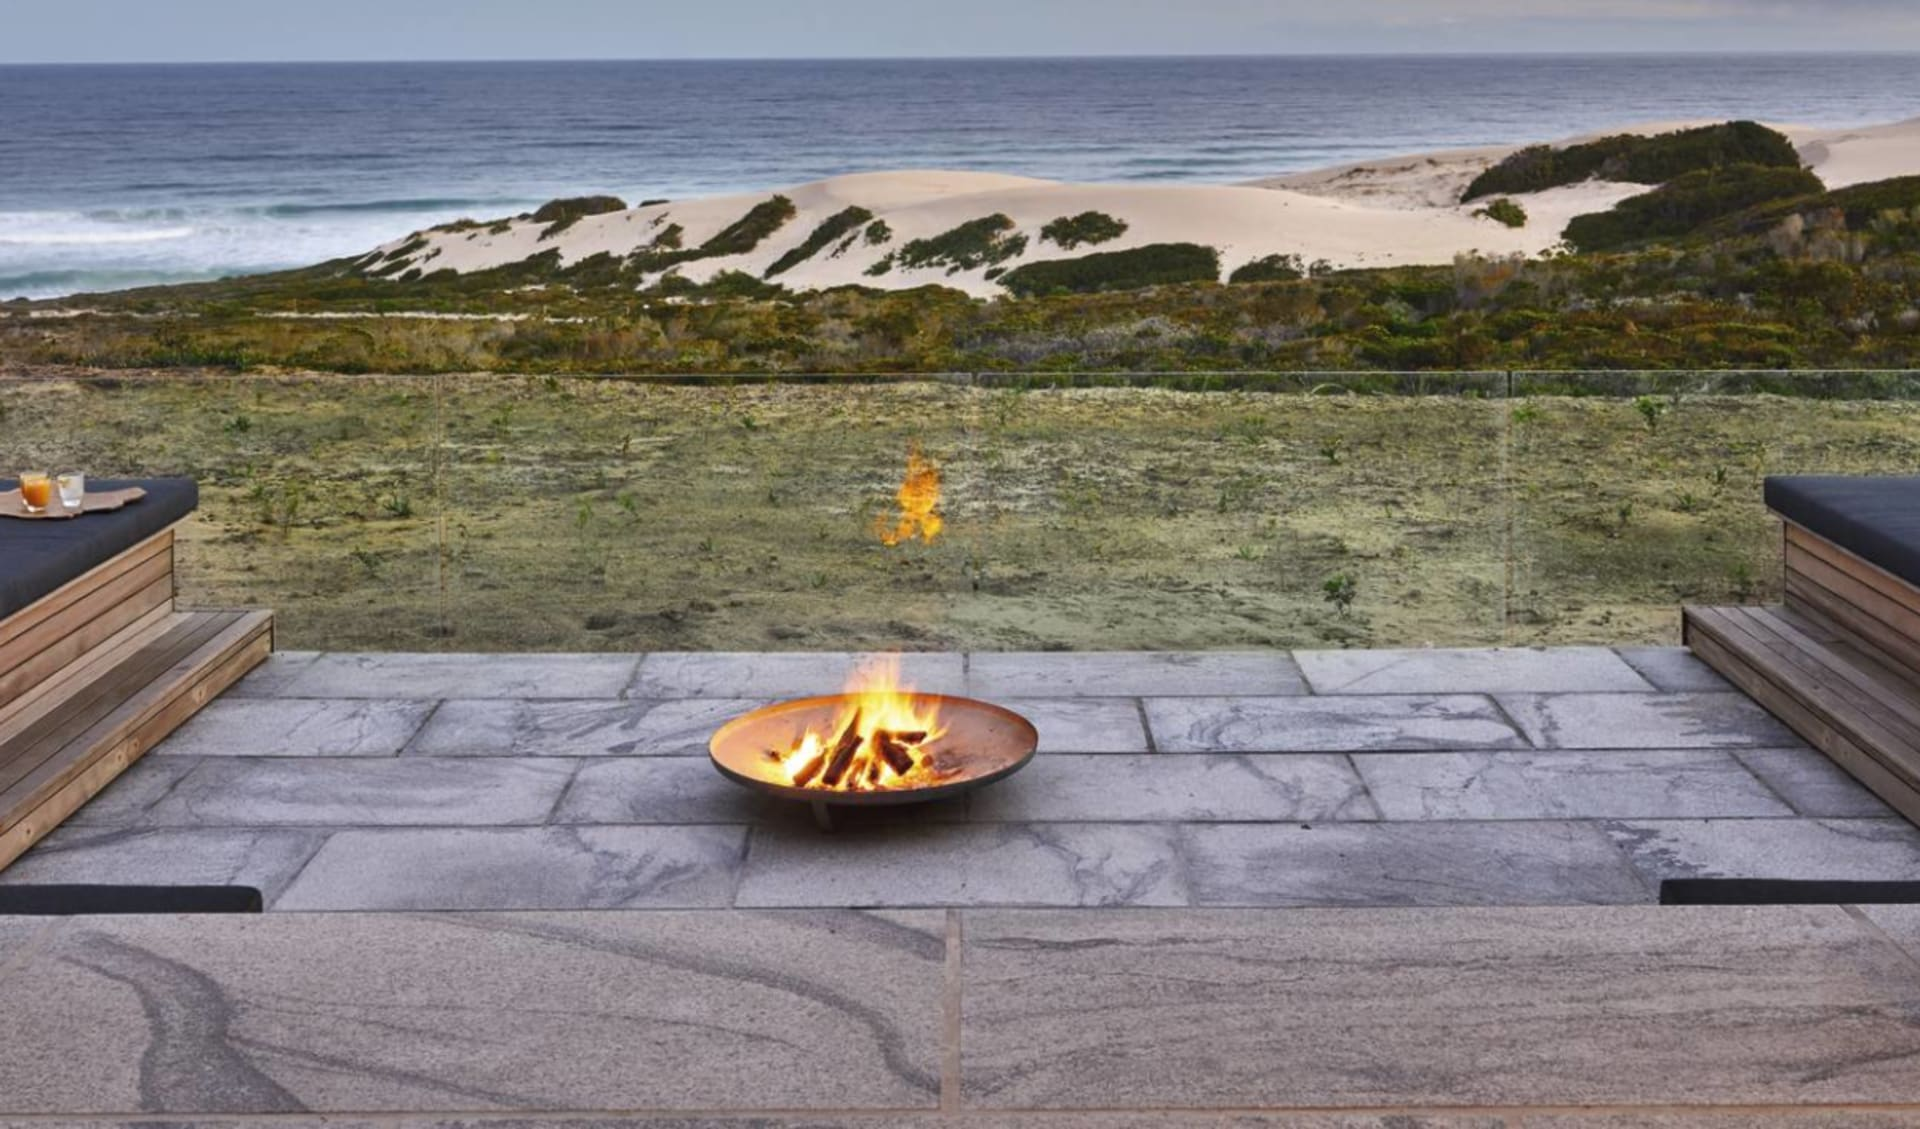 Wonders of South Africa ab Kapstadt: exterior Morukuru Beach Lodge - Lounge mit Feuerstelle